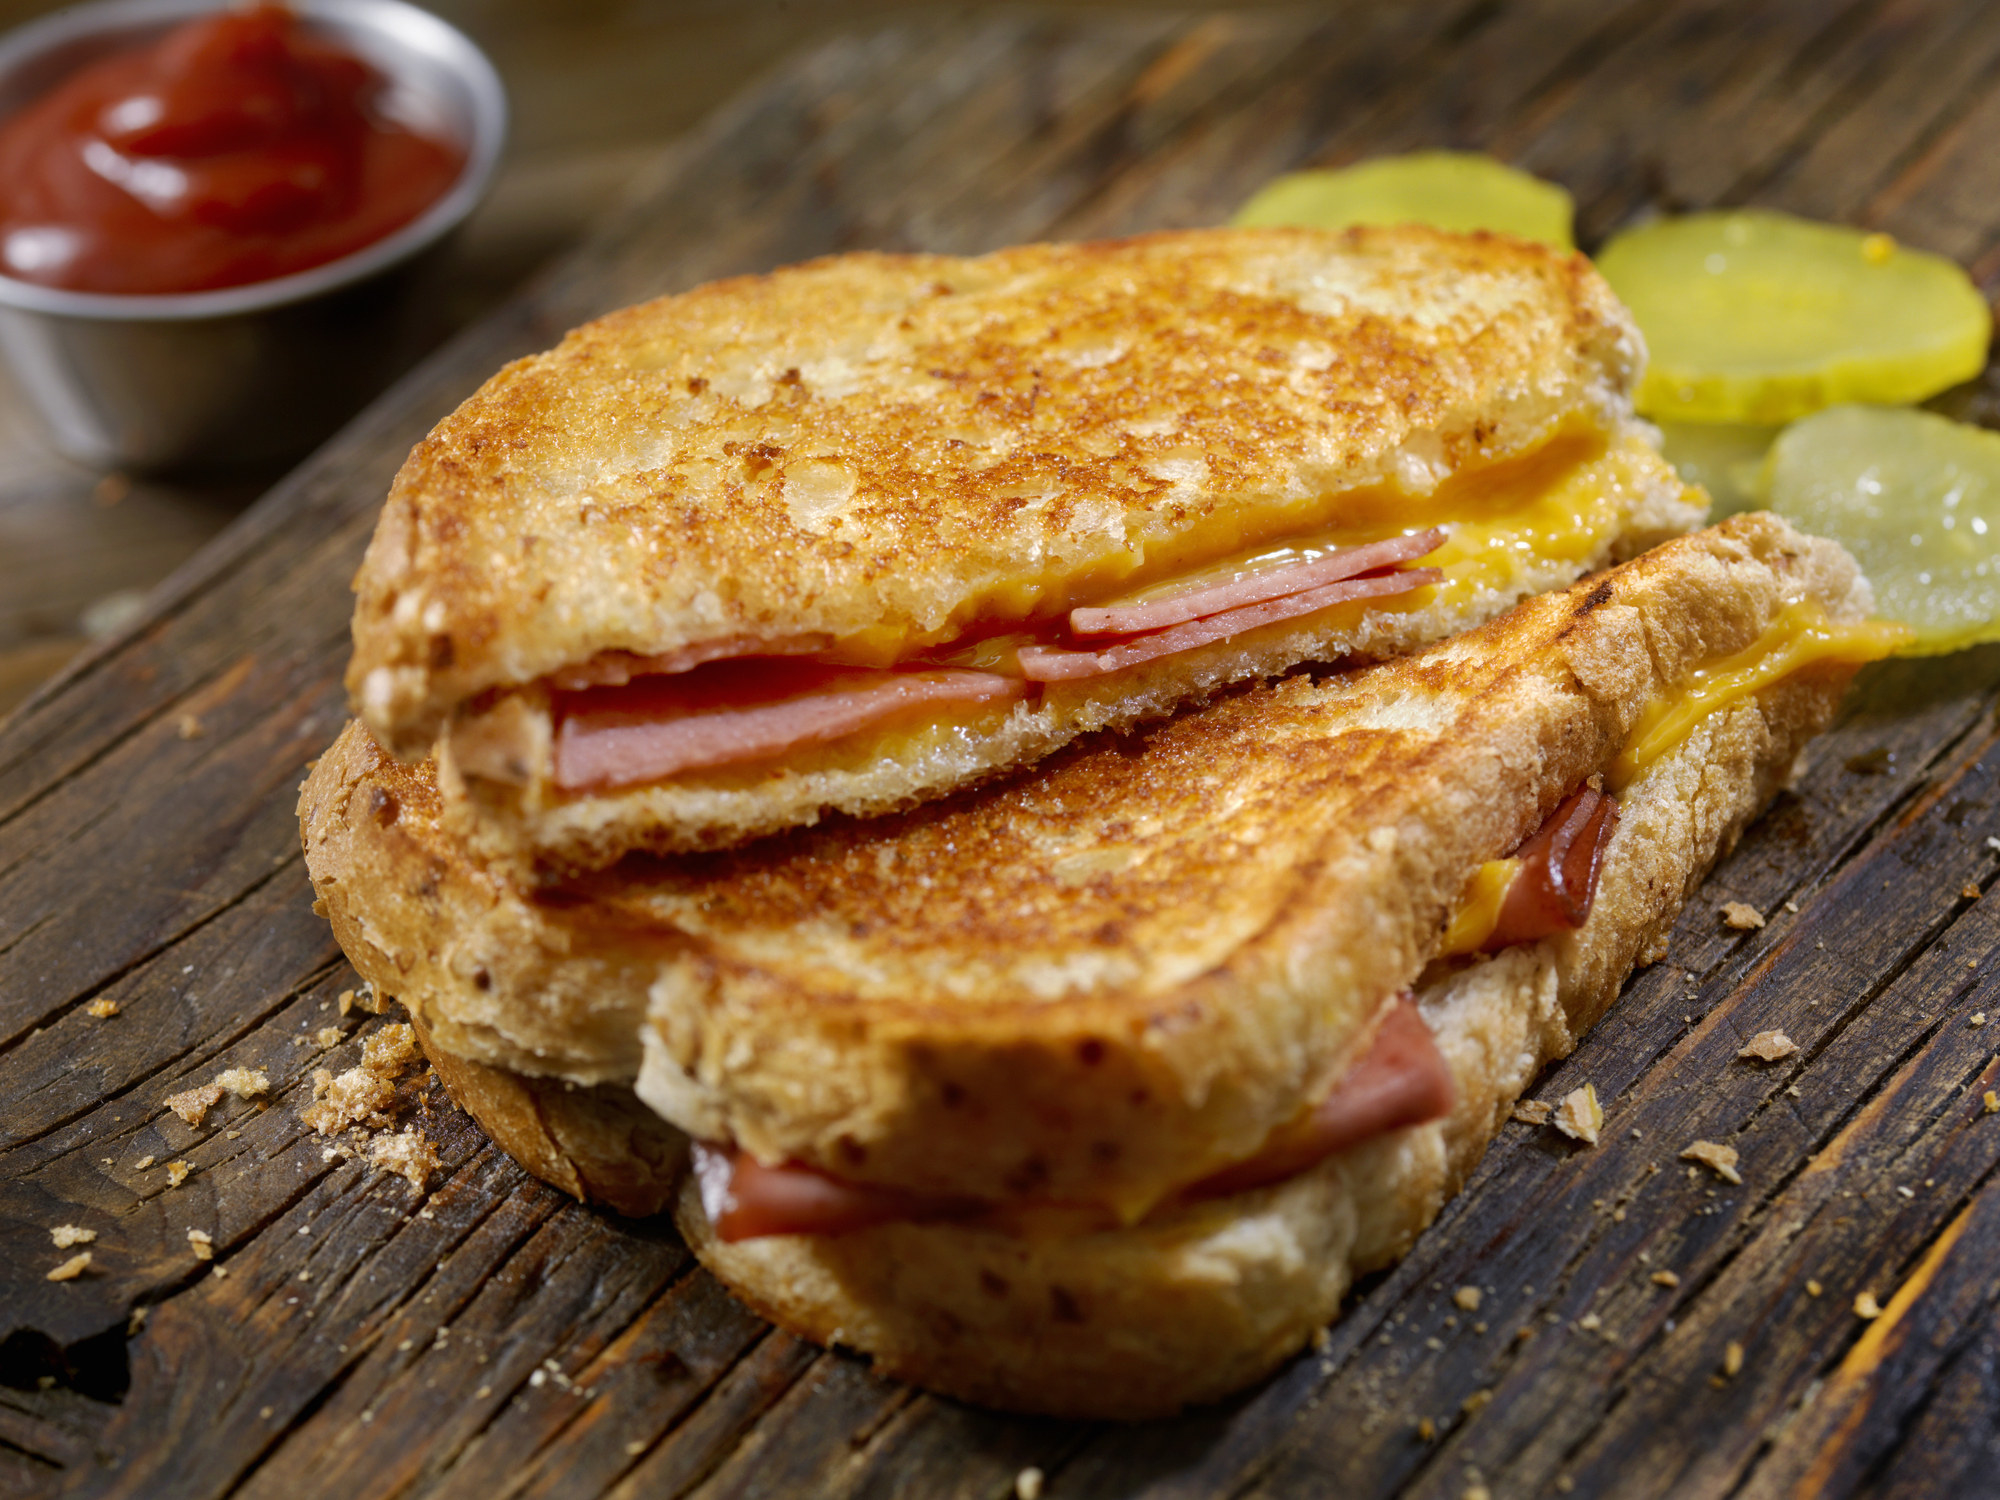 Grilled cheese and bologna sandwich on a wooden board with pickle slices and a metal ramekin of ketchup in the background